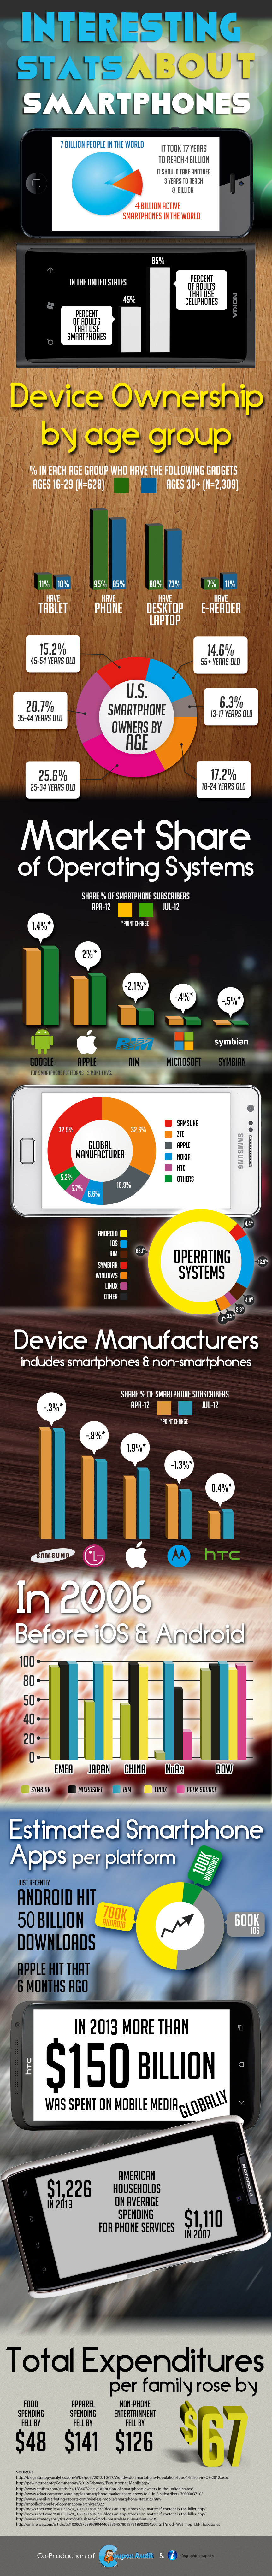 Interesting-Stats-About-Smartphones.1